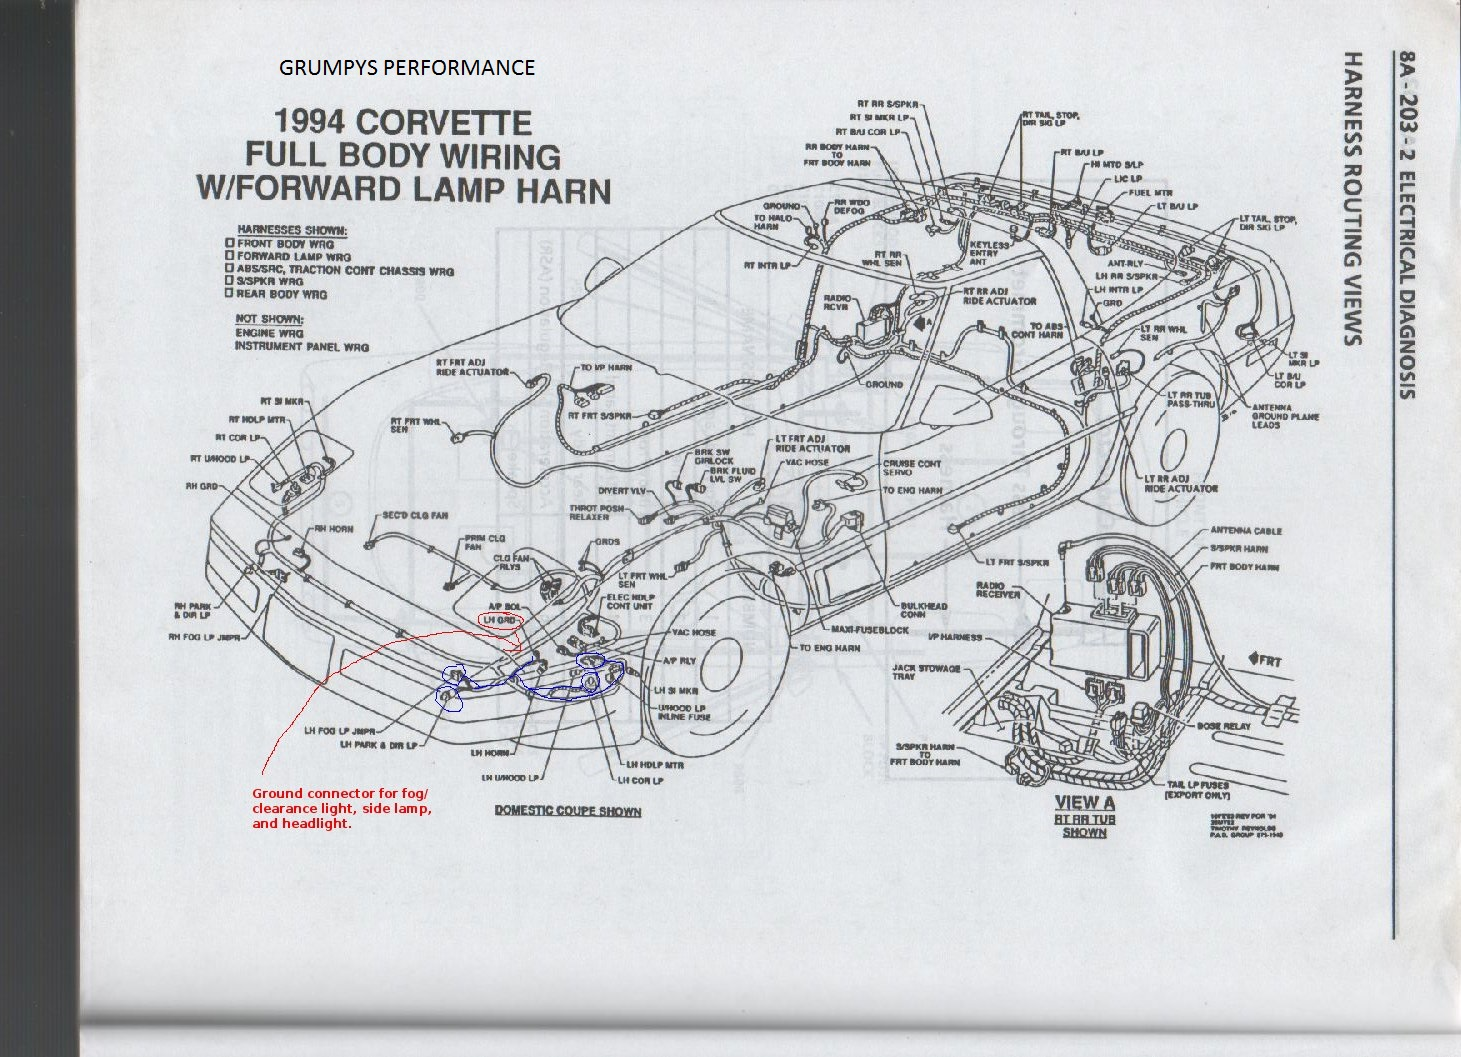 hight resolution of 1990 corvette engine diagram wedocable wiring diagram for you 1990 audi 200 fuse box wiring